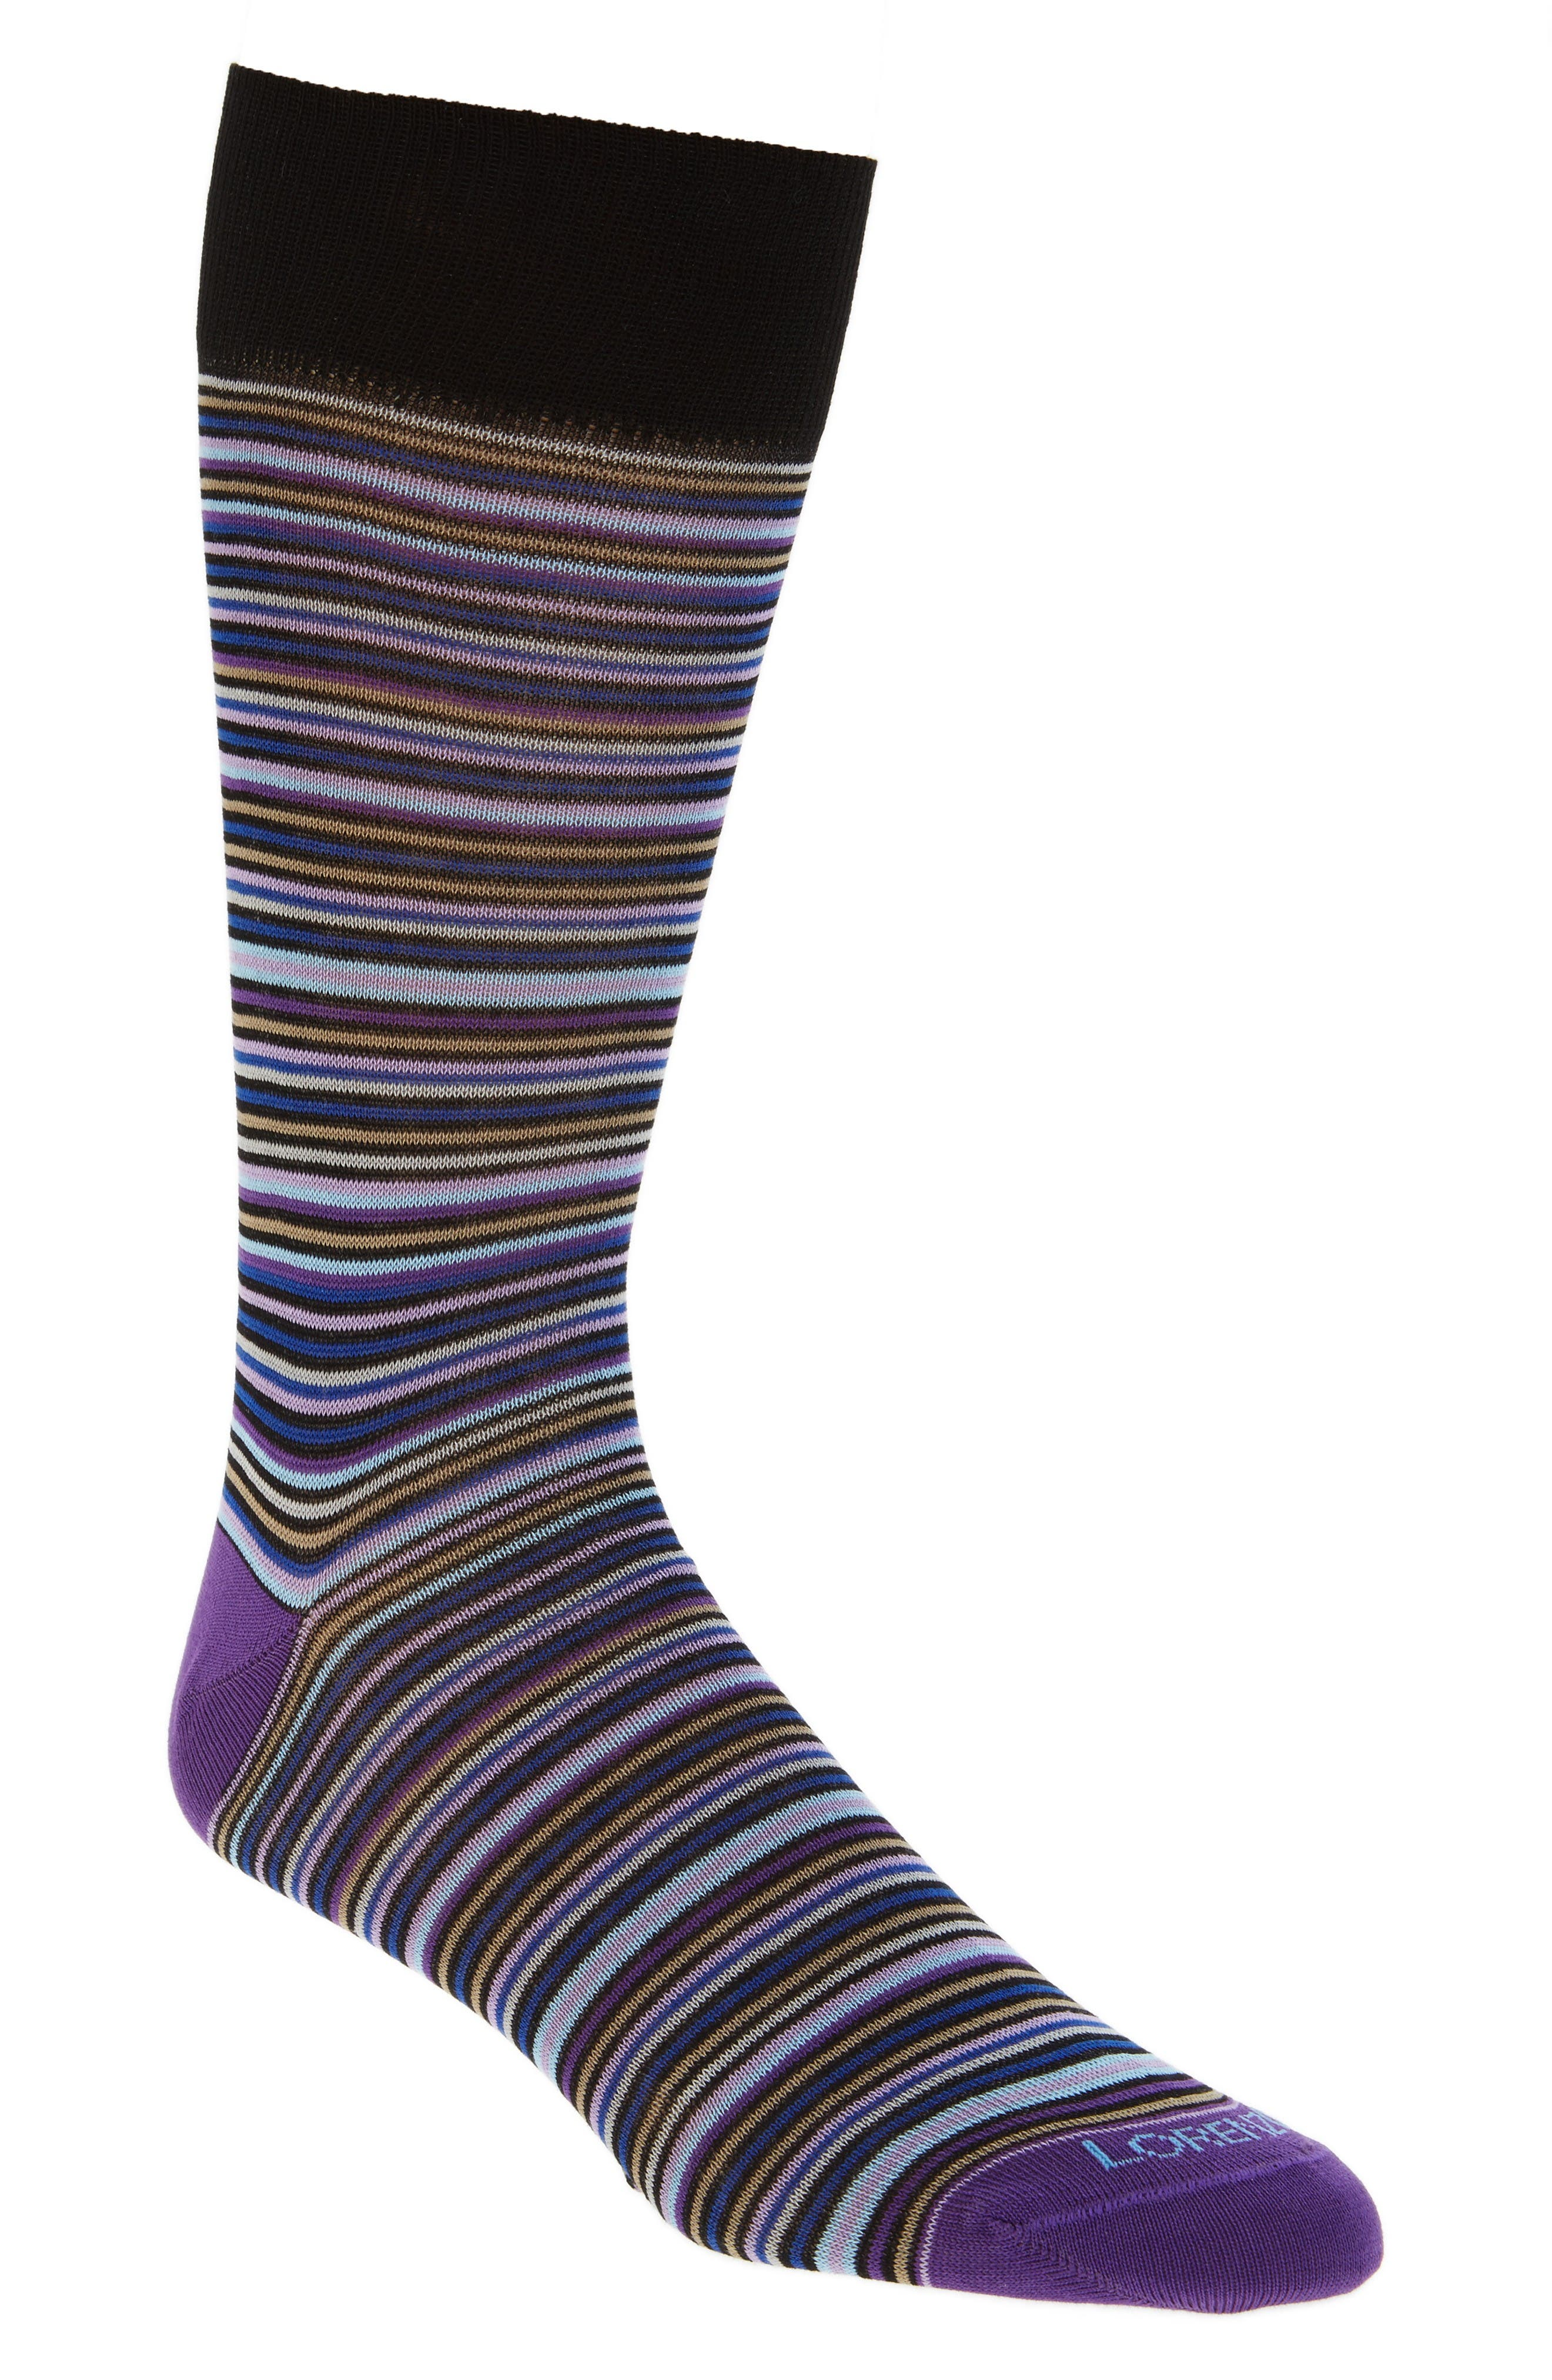 Lorenzo Uomo Multistripe Crew Socks (3 for $30)